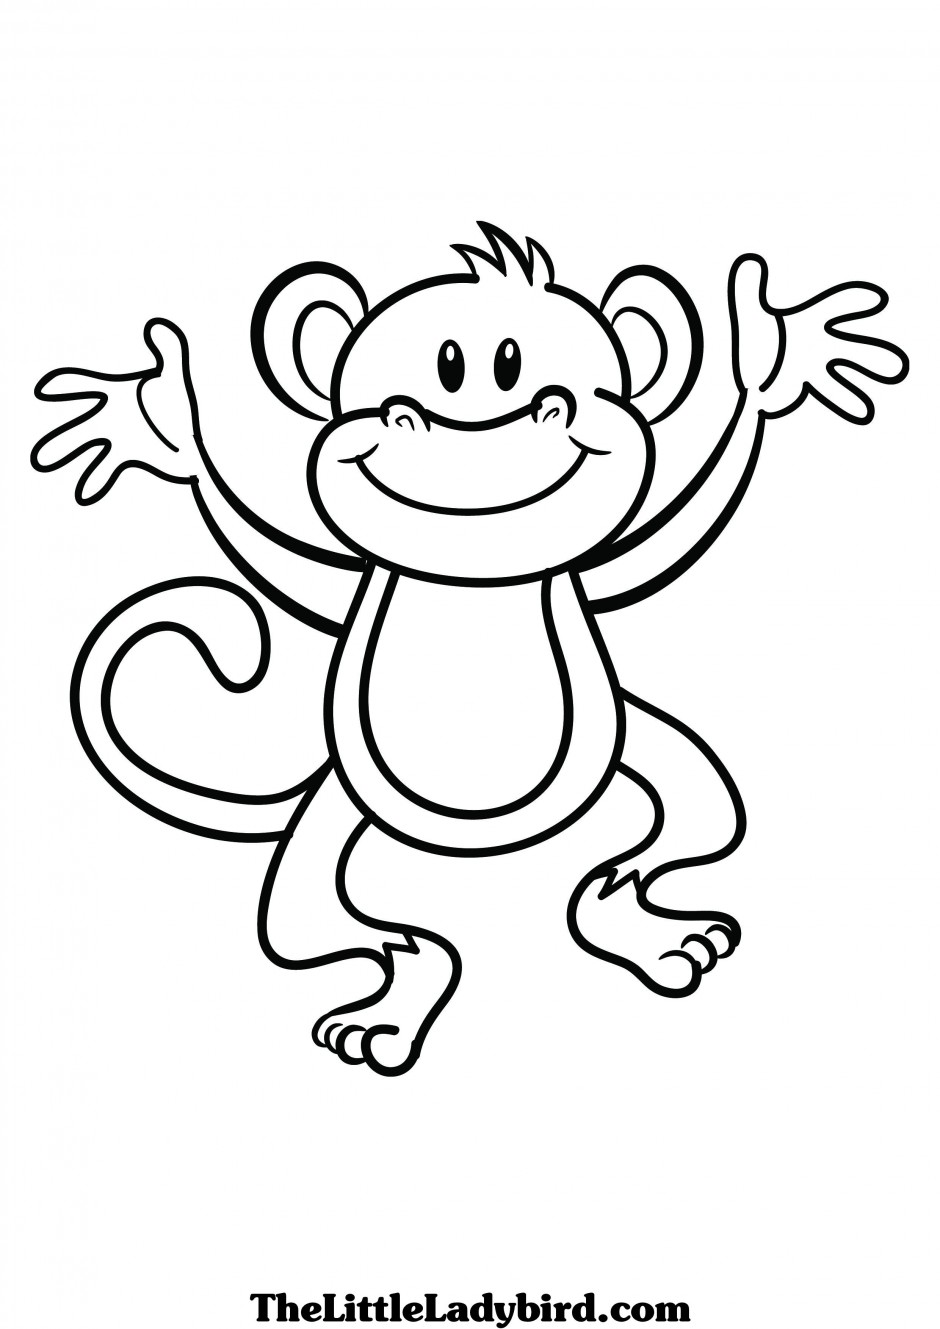 940x1329 Monkey Black And White Outline